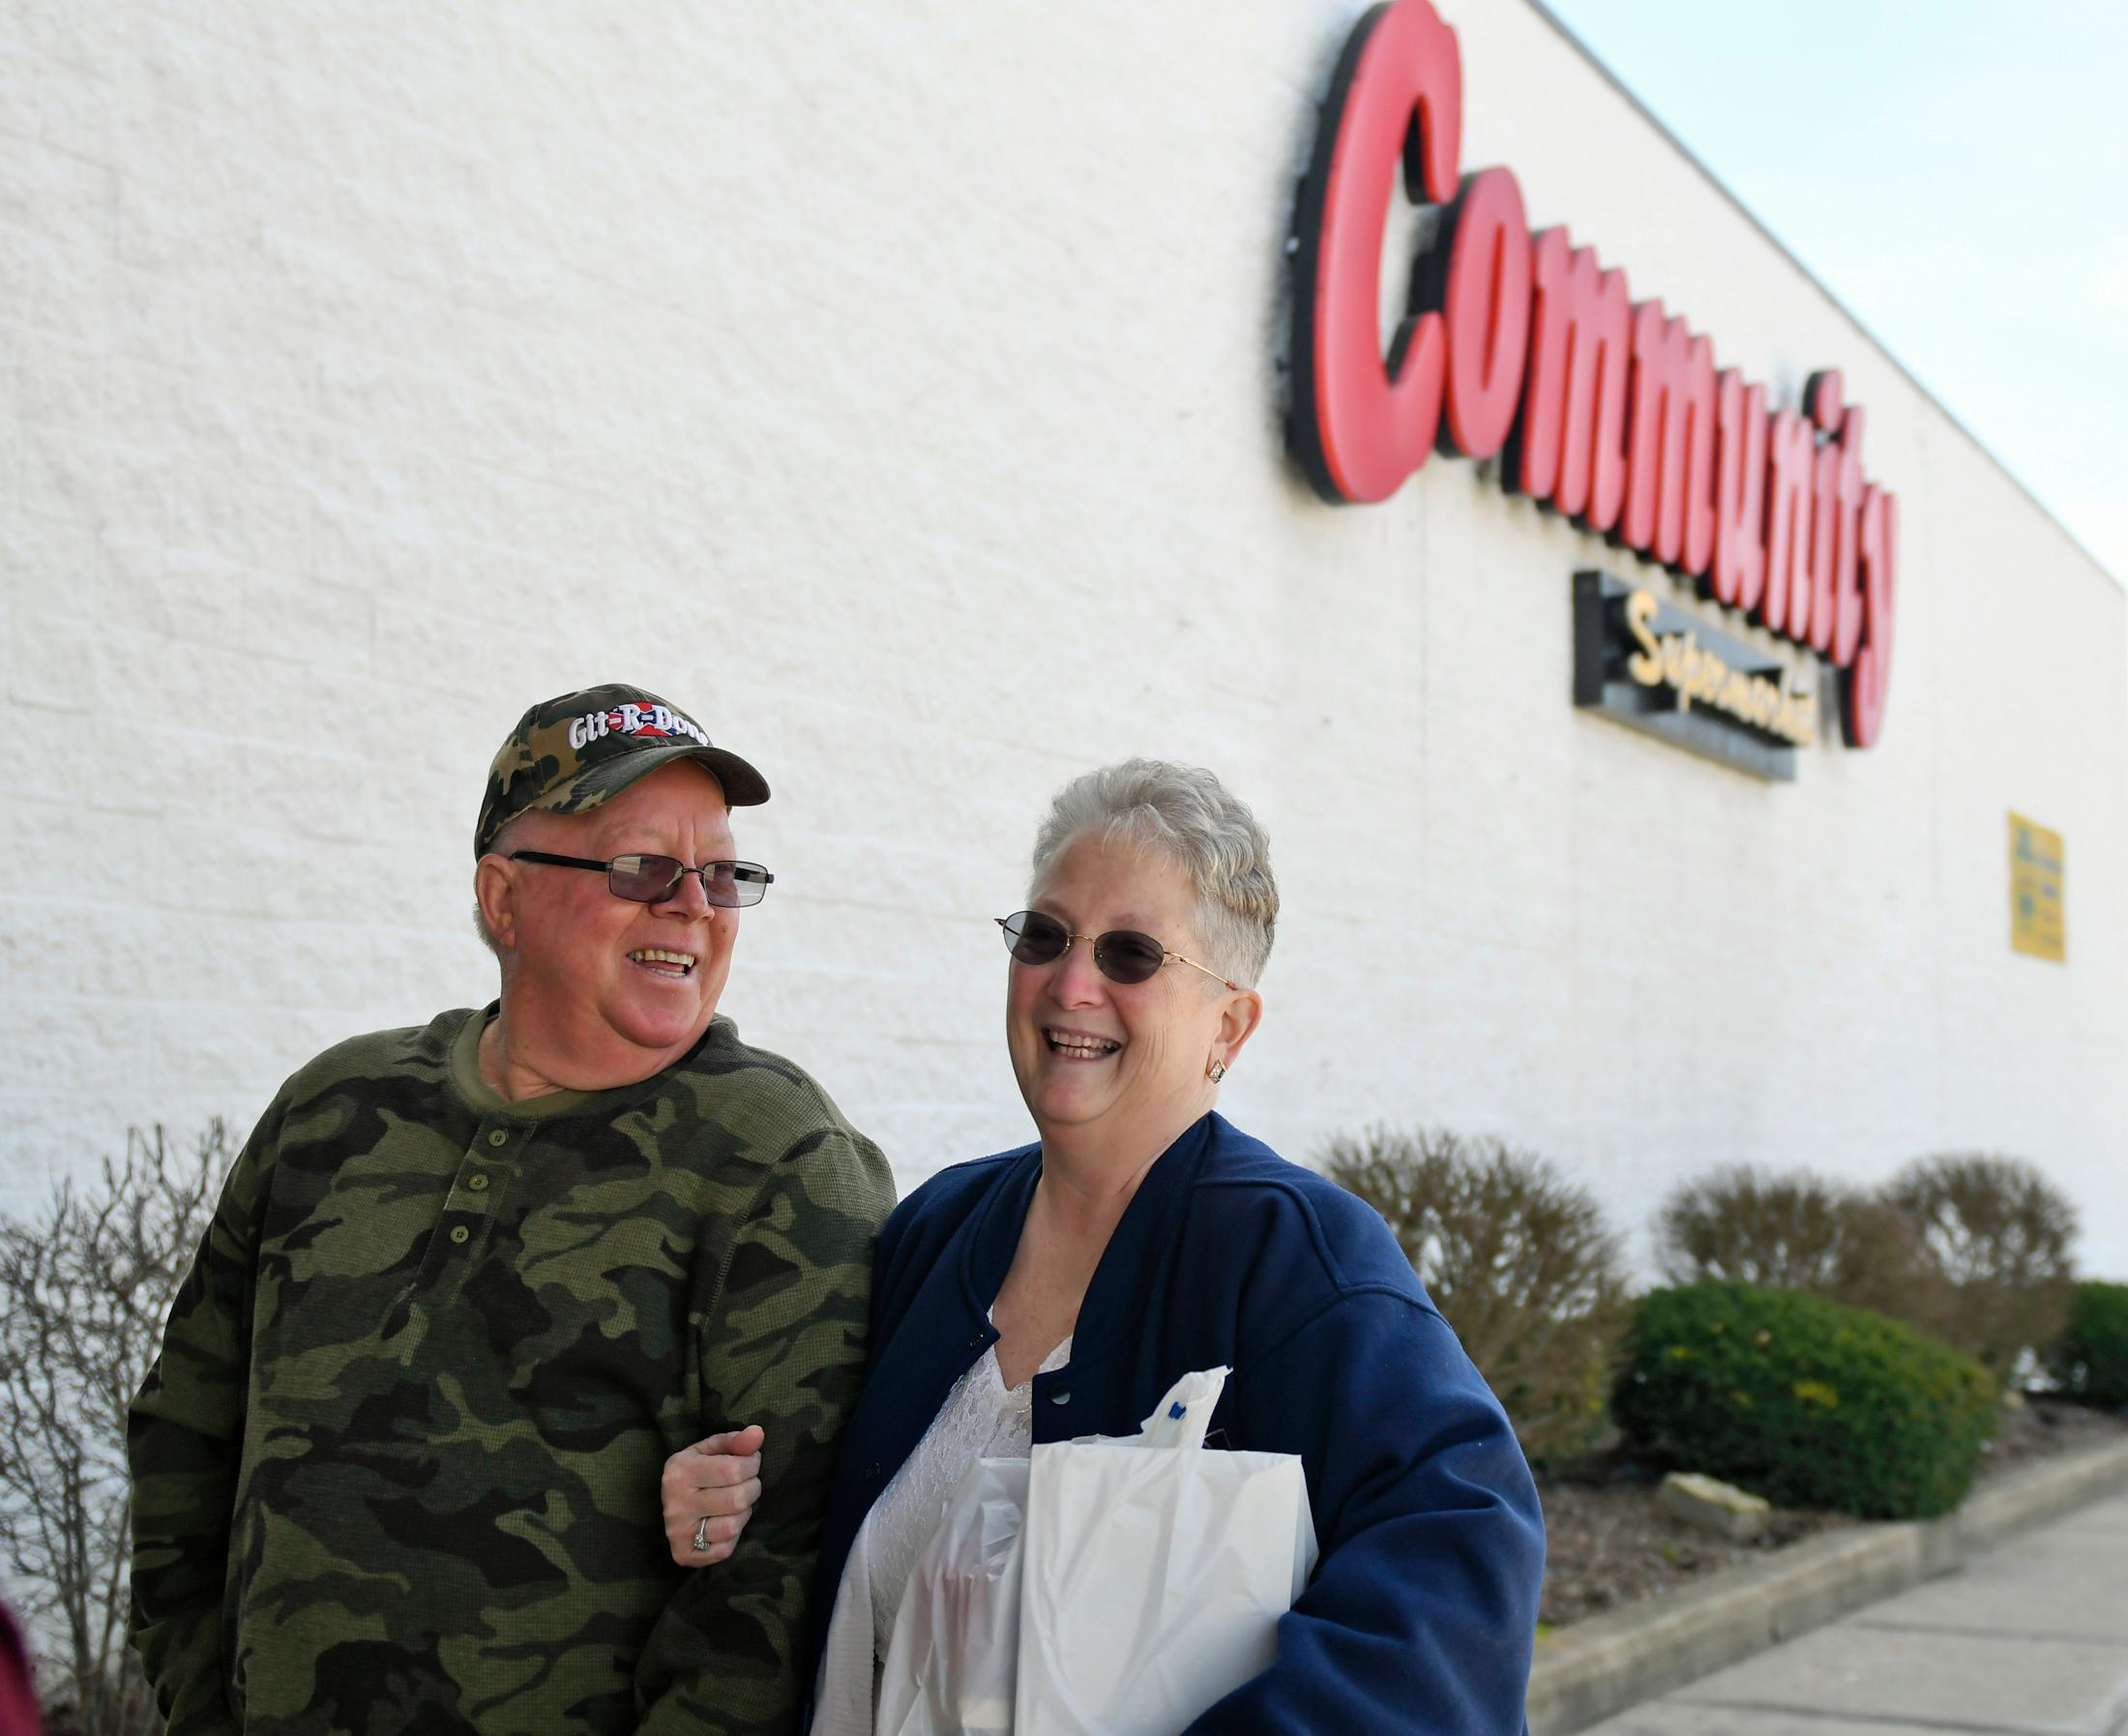 In this April 1, 2018 photo, Larry Spiering and Becky Smith pose for a photo outside where they held their wedding ceremony at the Community Market in Lower Burrell, Pa. Smith said she was working at the supermarket when Spiering walked up and gave her a piece of paper with his name and phone number on it. She said it was only fitting that they married in the aisle where they met. (Jack Fordyce/Pittsburgh Tribune-Review via AP)